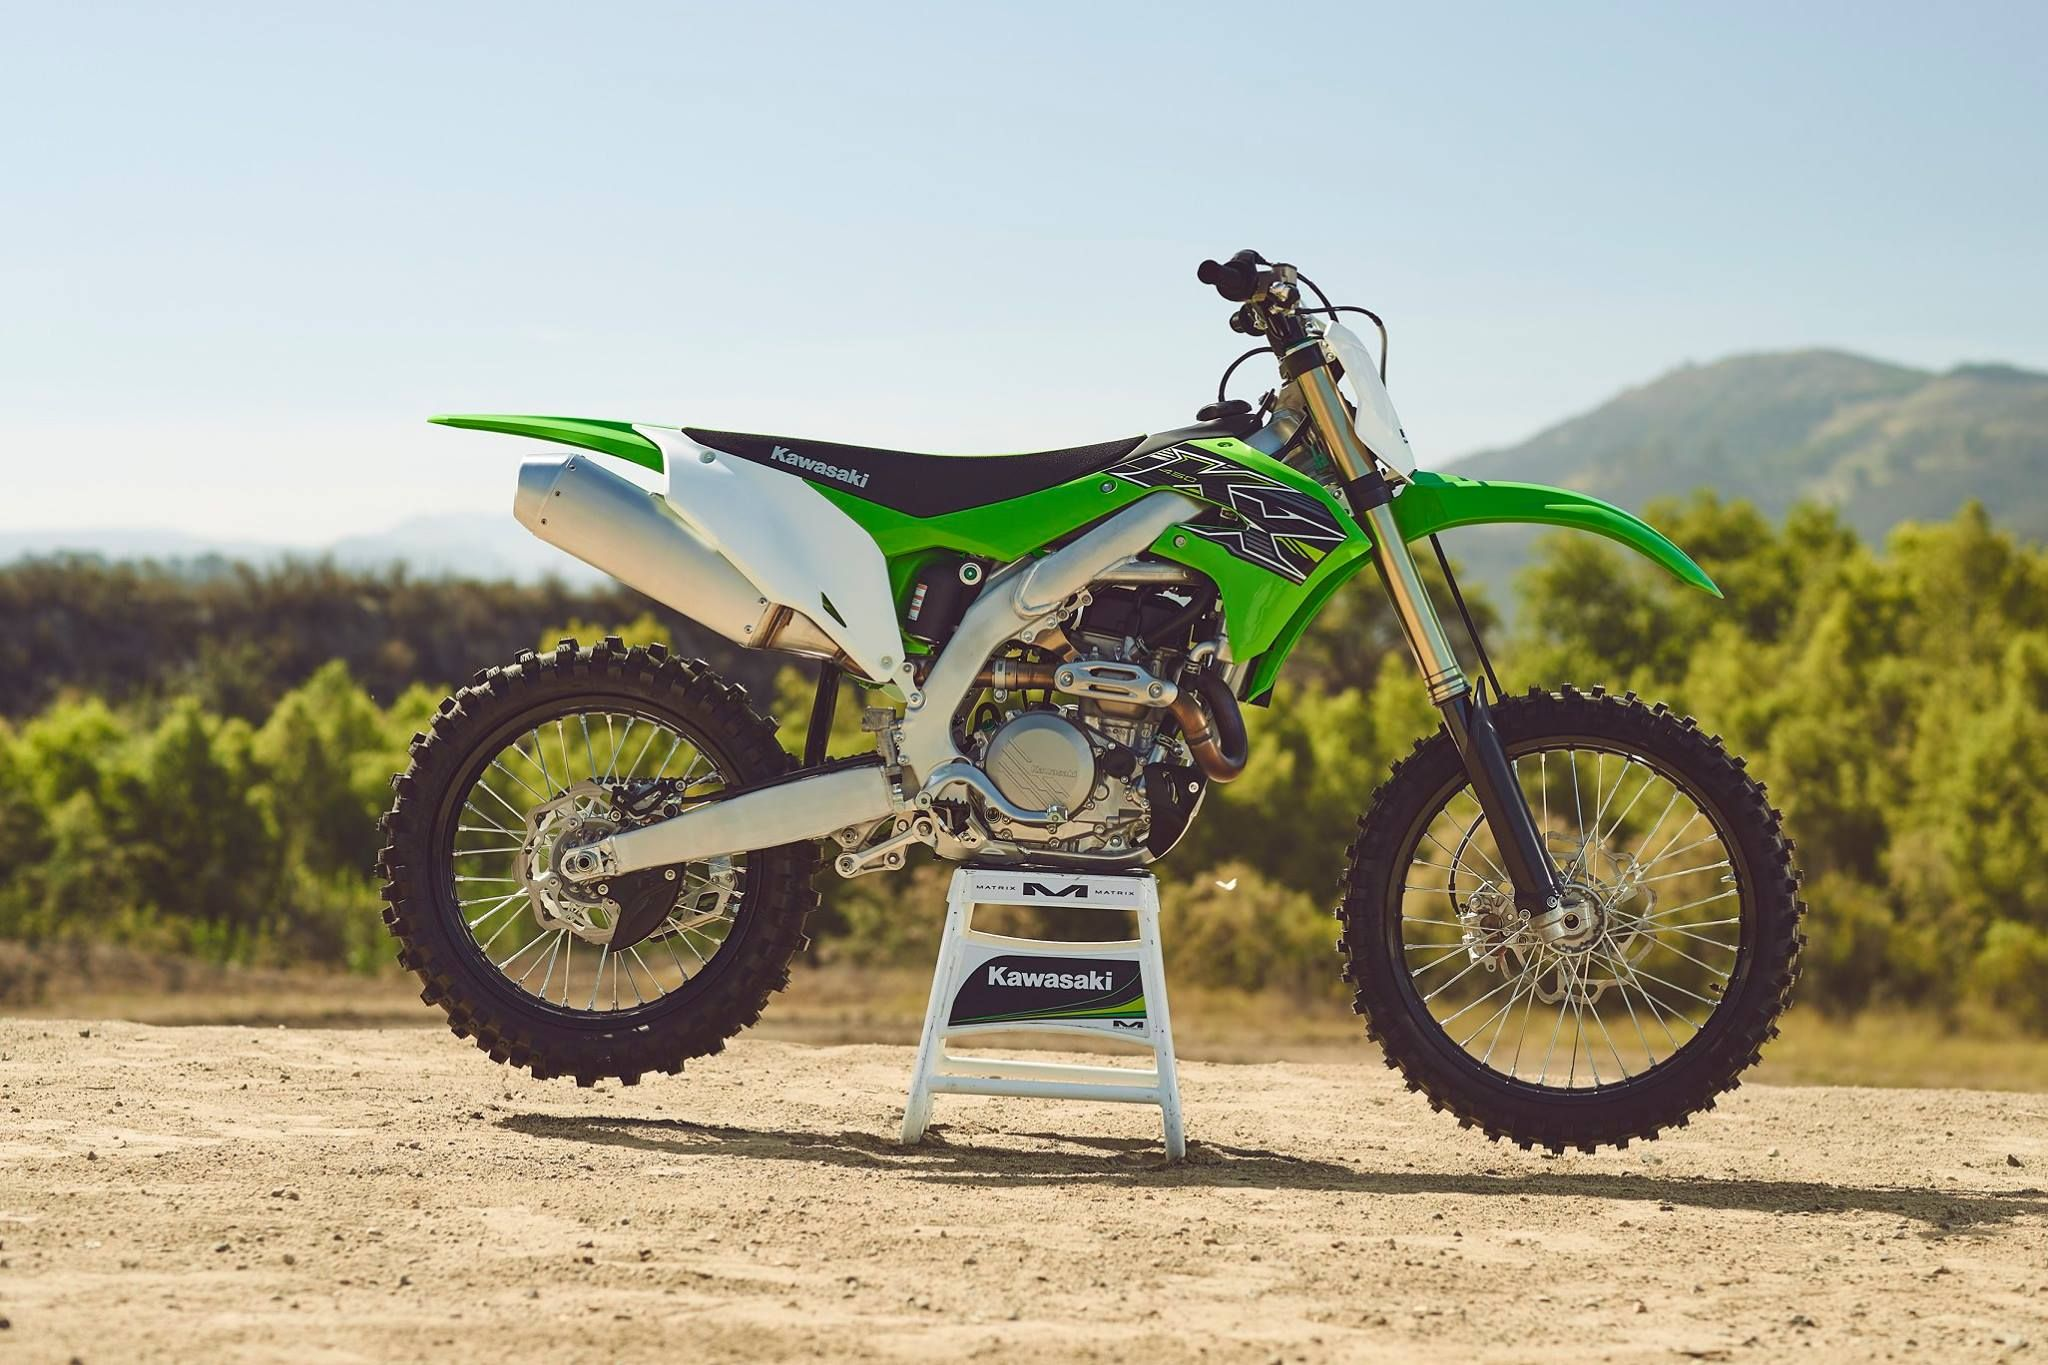 The all-new 2019 Kawasaki KX450 was just named the